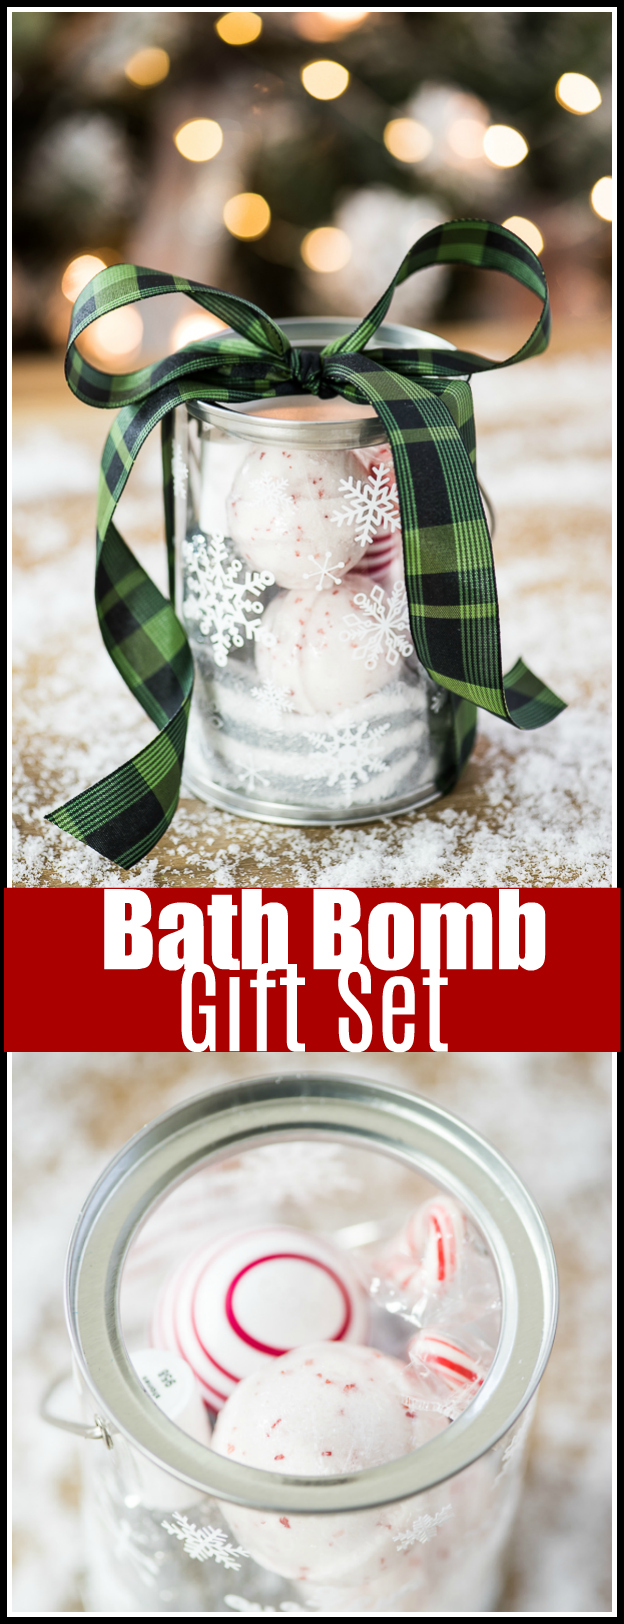 Bath Bomb Pampering Gift Set